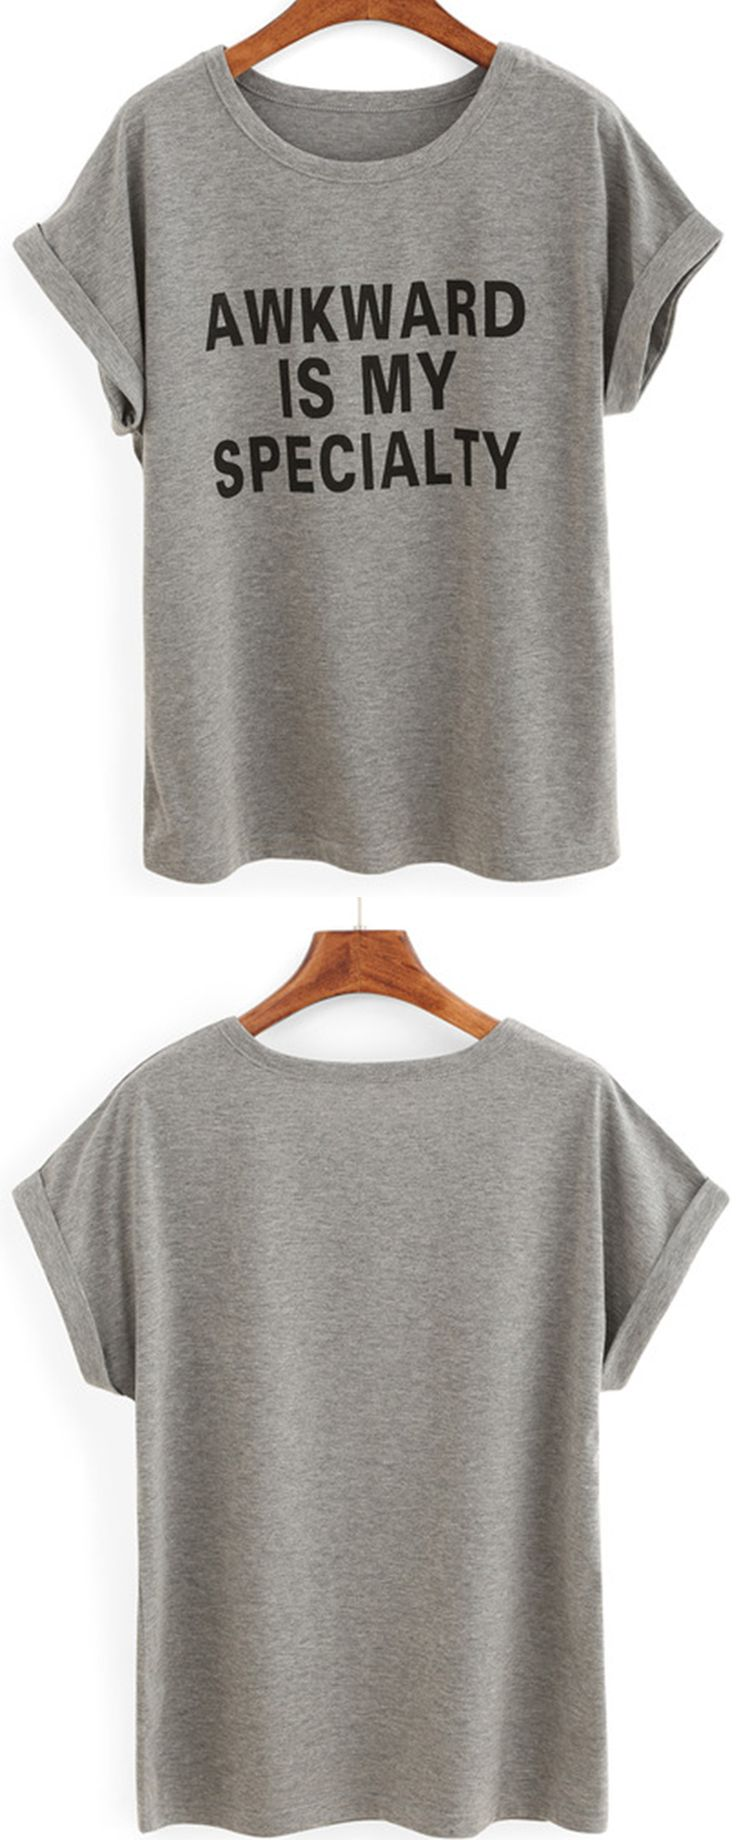 Teens. Classic slogan tees are perfect for laid back looks. Try this grey Grey Letters Print Cuffed T-shirt with denim shorts and sandals this season.